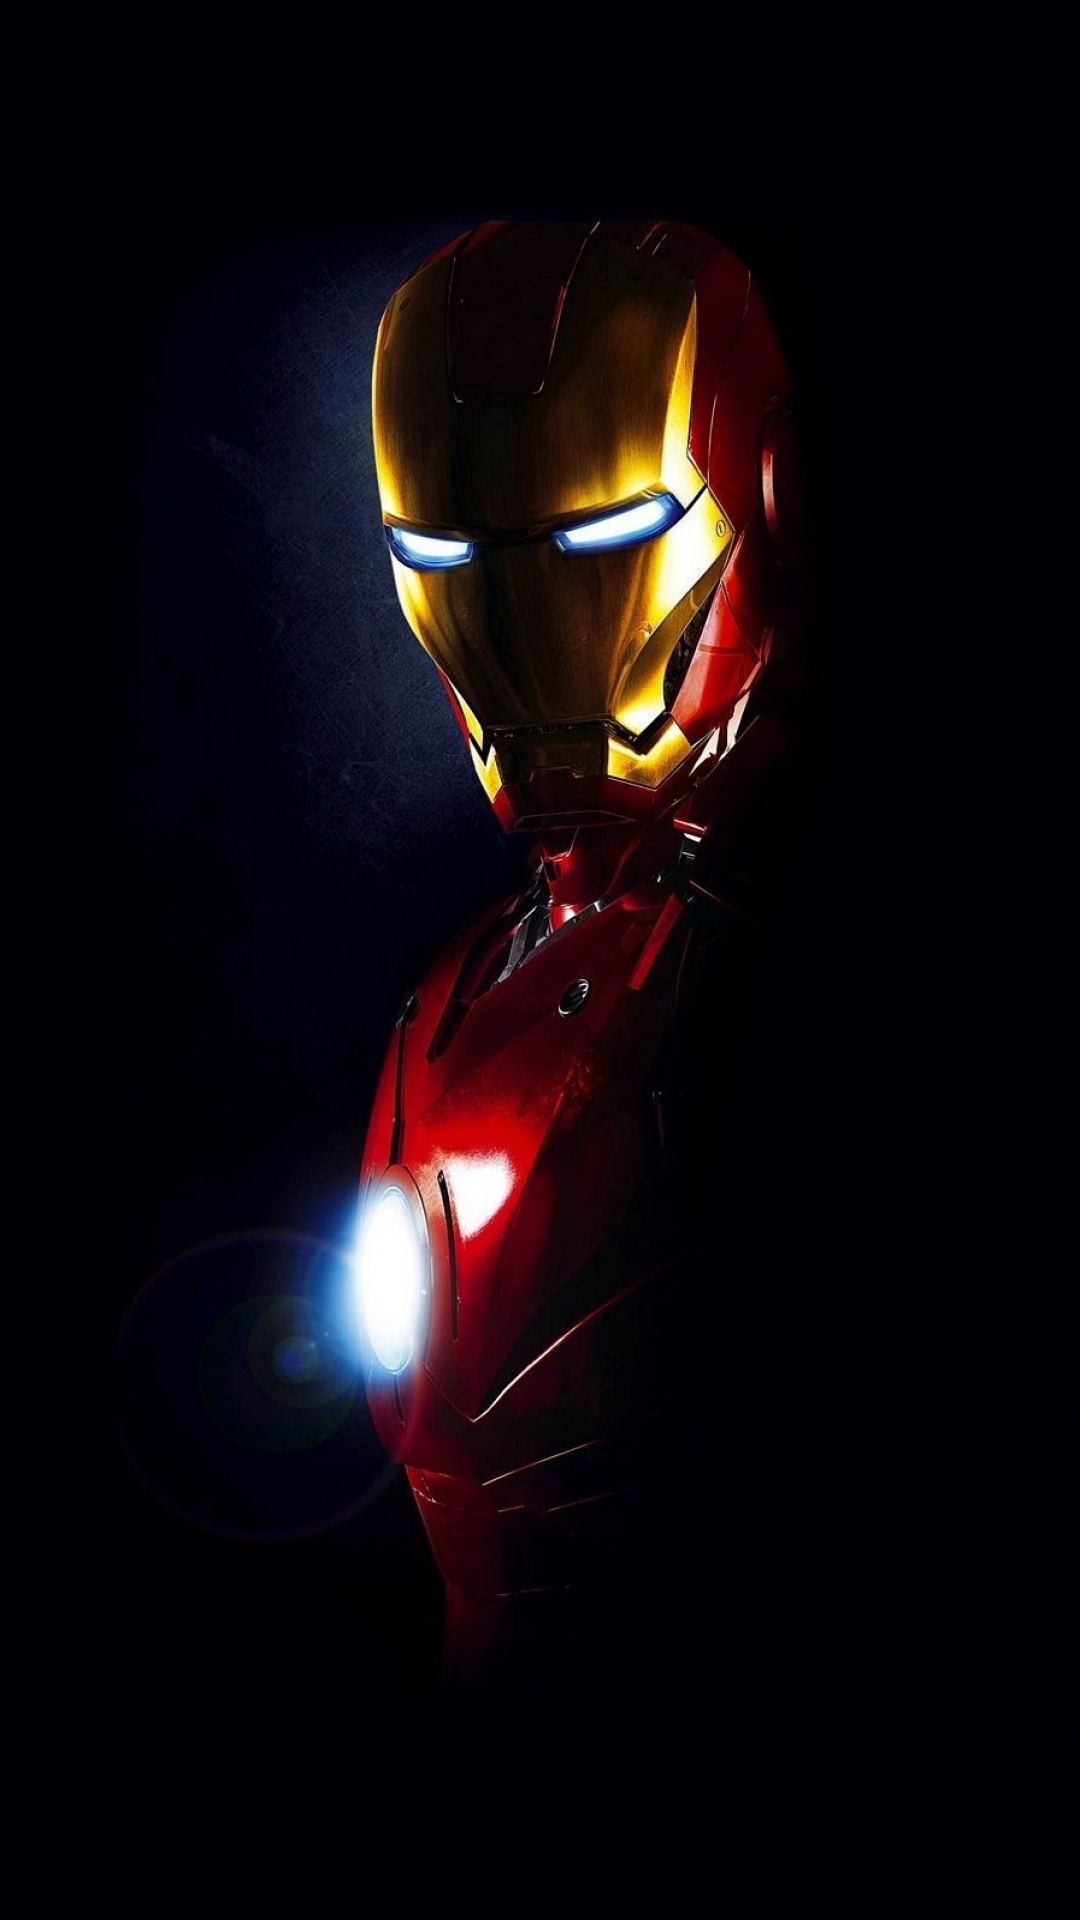 Iron Man Wallpaper For Iphone 7 | Galleryimage.co